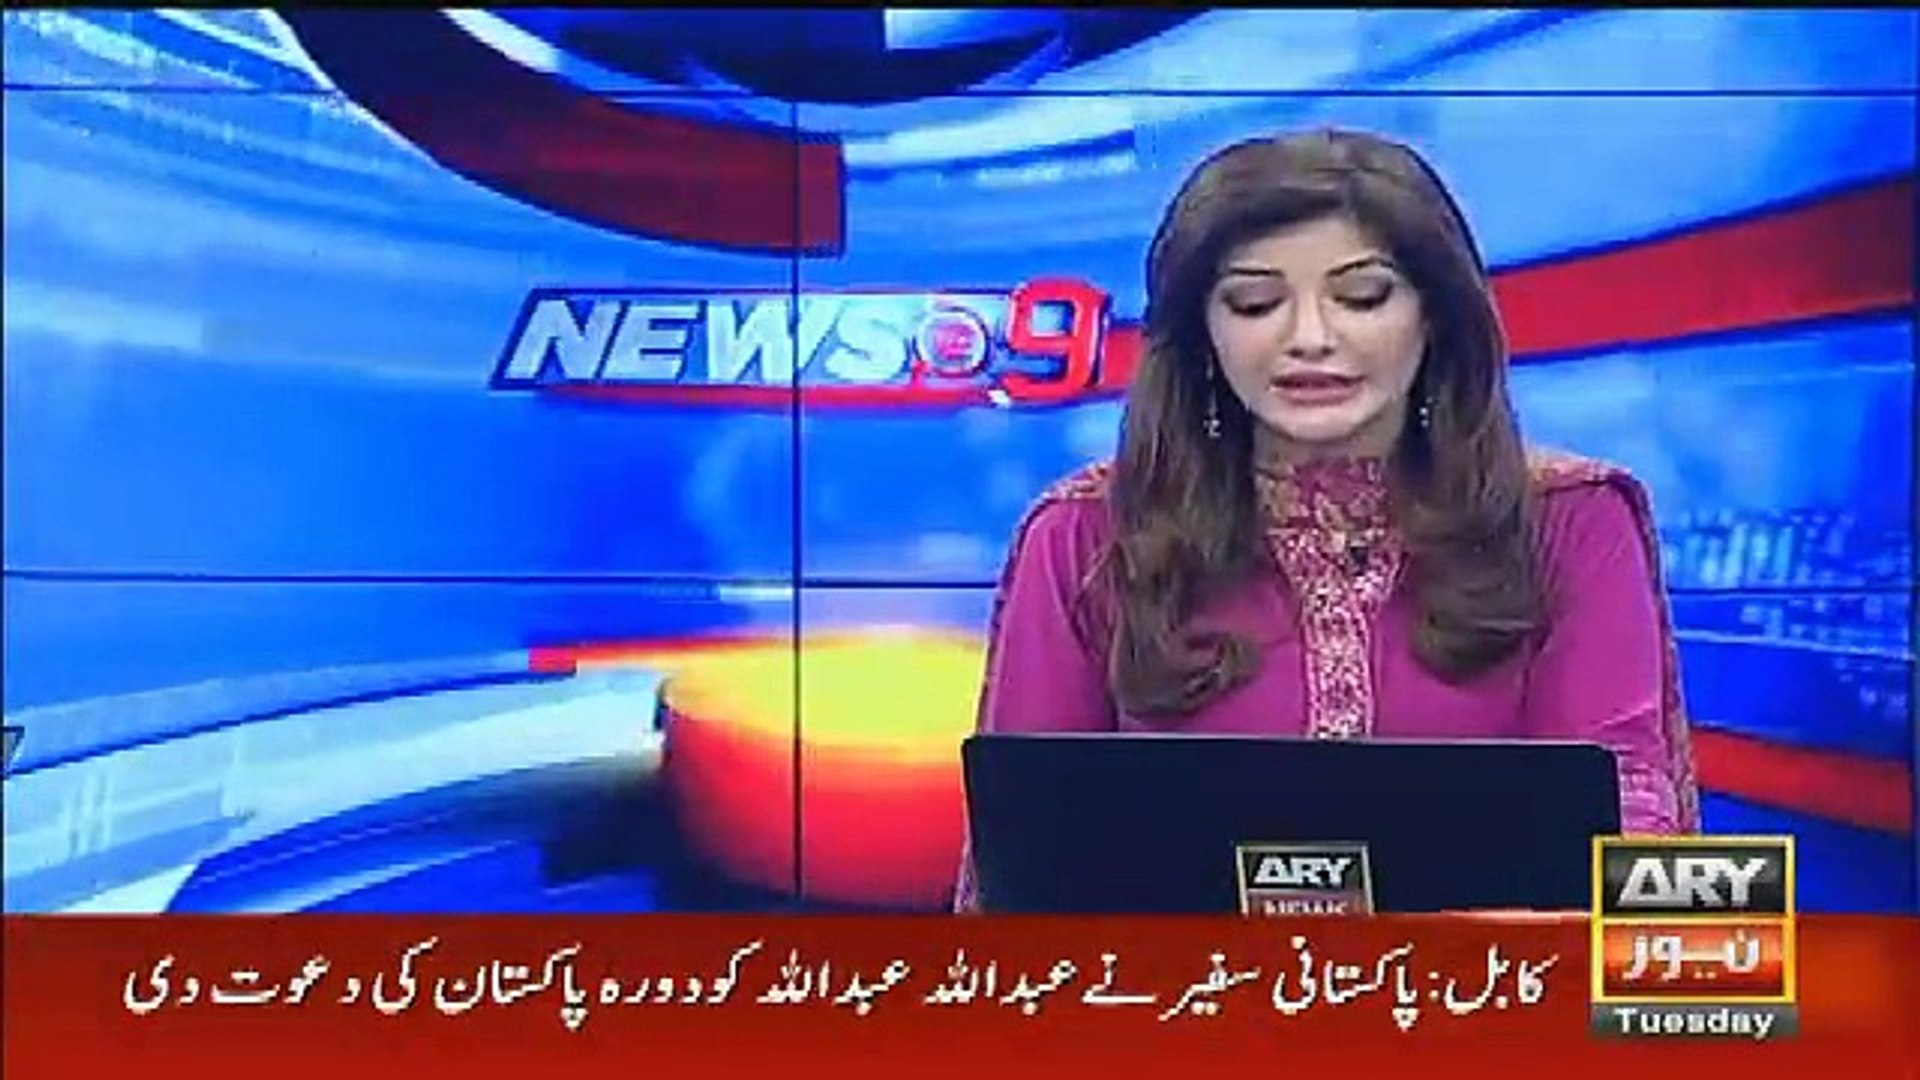 Ary News Casters